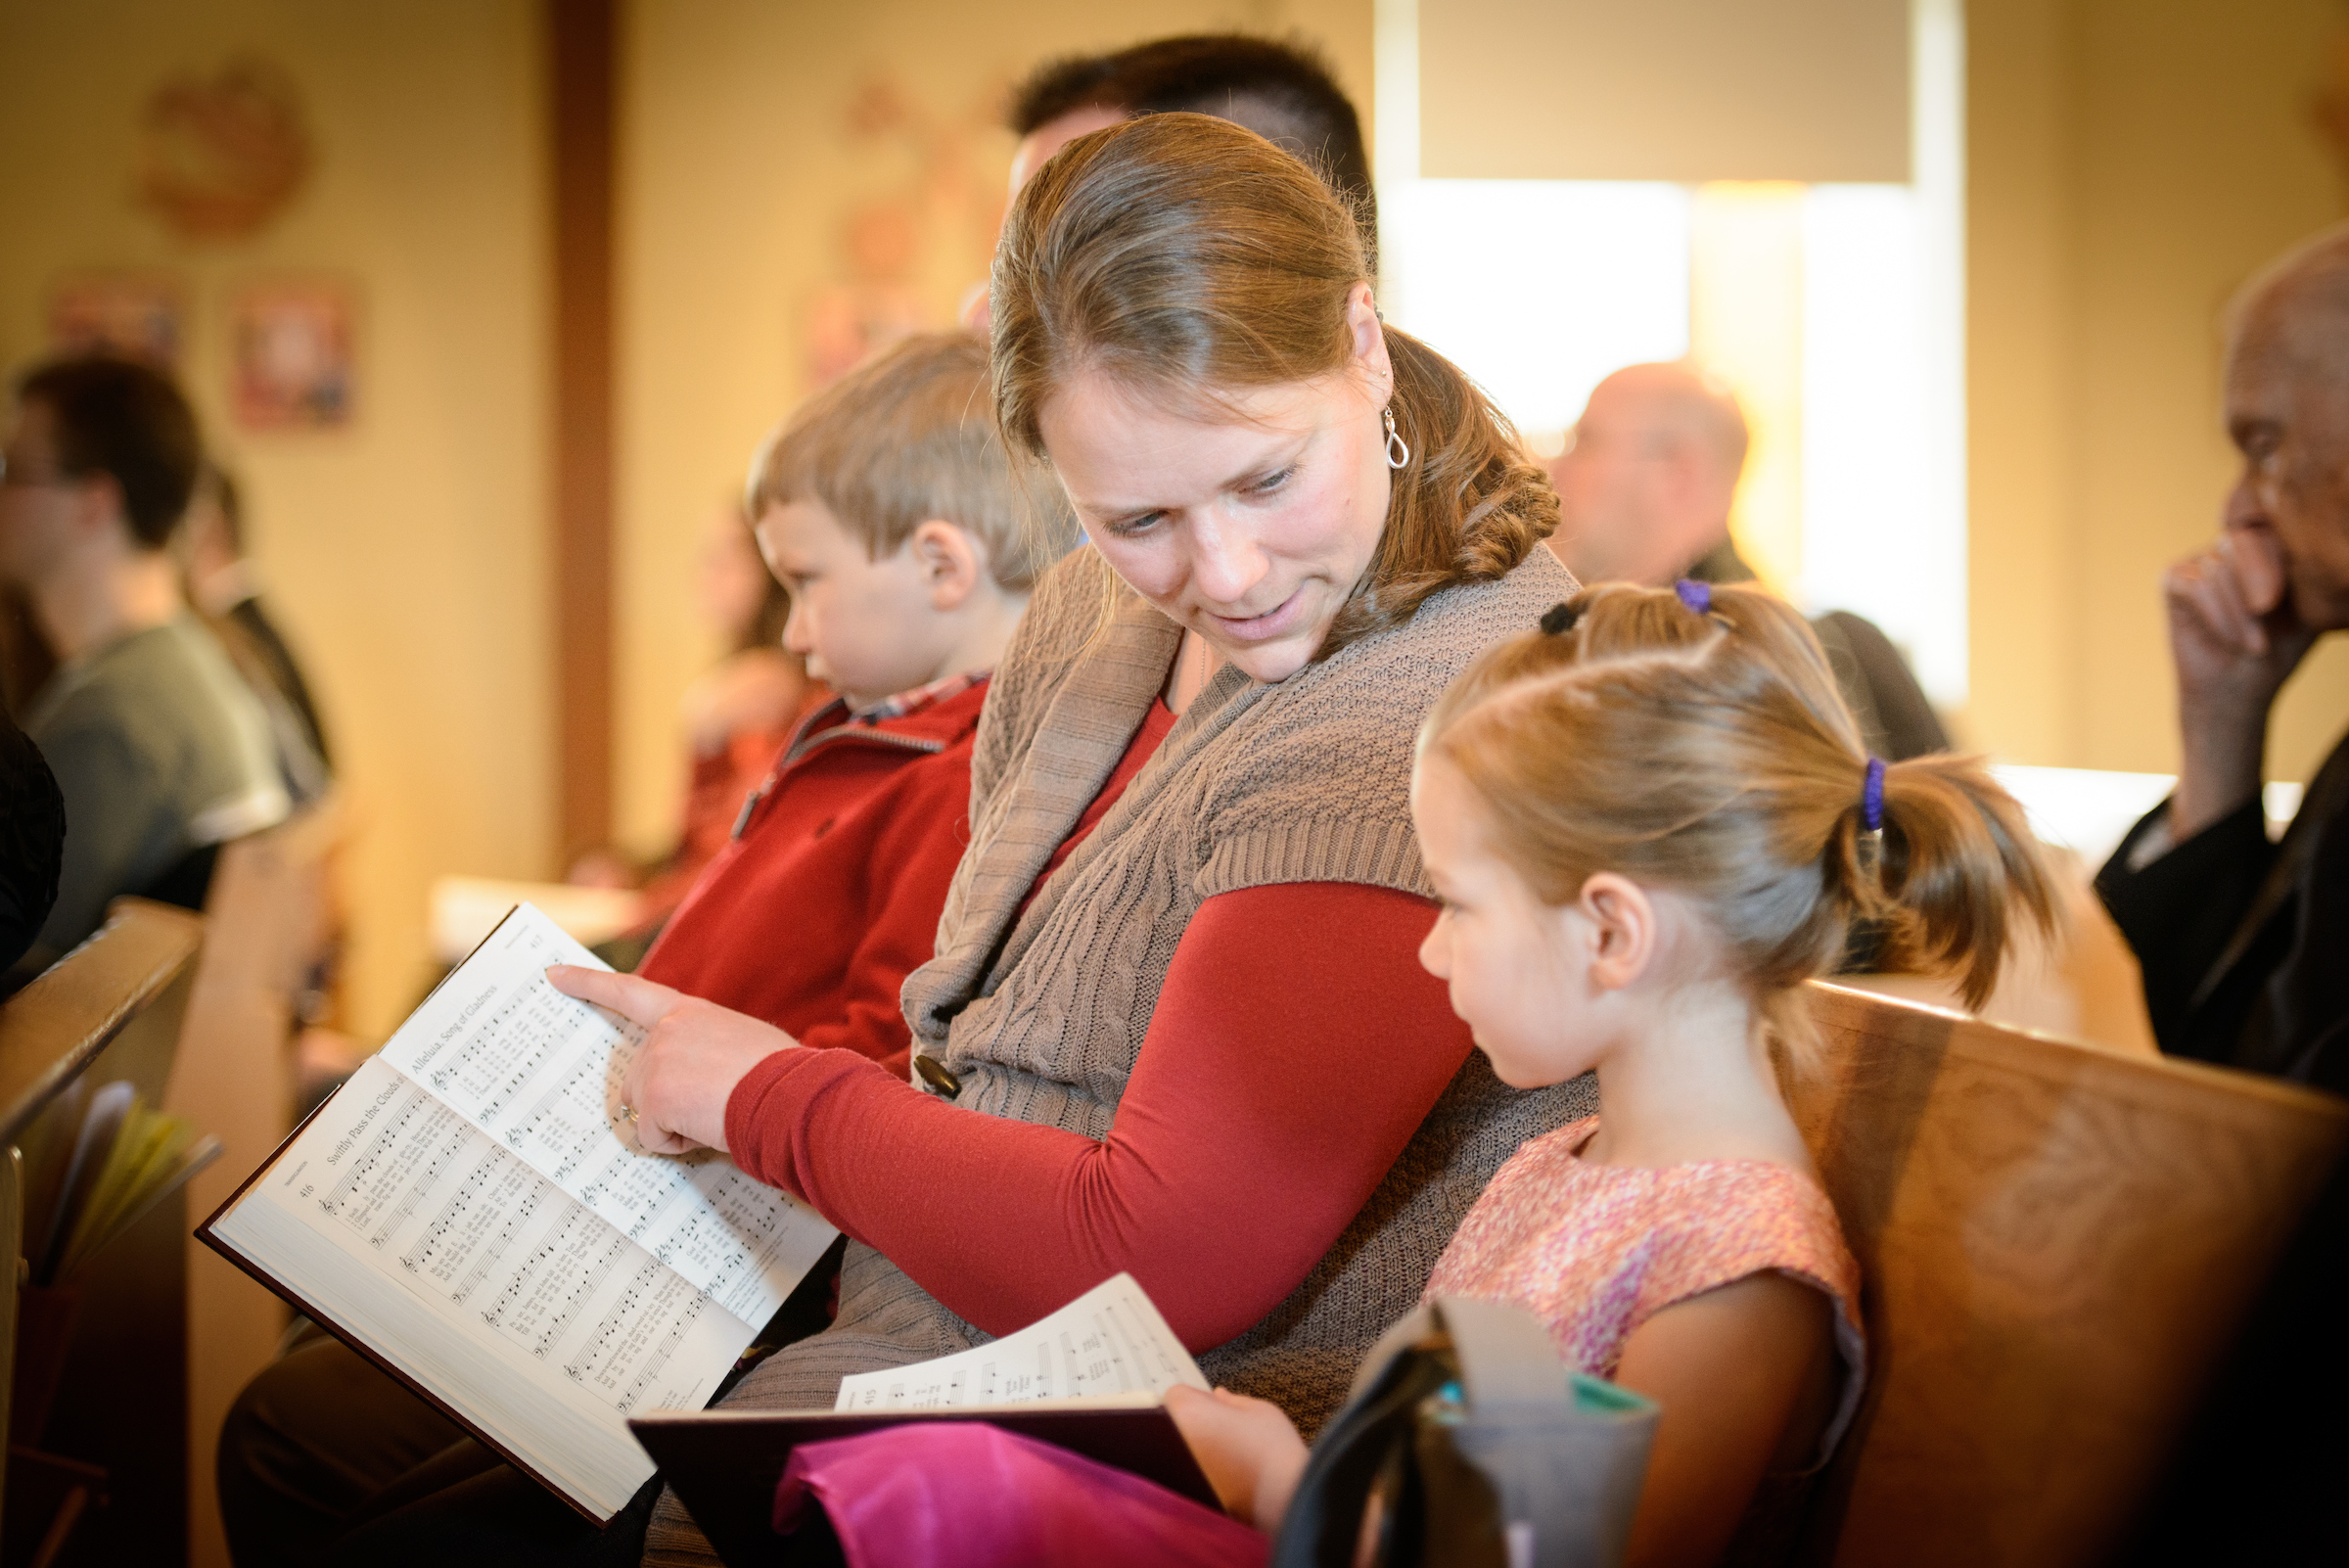 Laurie Vogt leads her daughter Abigail Vogt in the Lutheran Service Book during worship on Transfiguration Sunday, Feb. 7, 2016, at Peace Lutheran Church in Sussex, Wis., LCMS Communications/Erik M. Lunsford